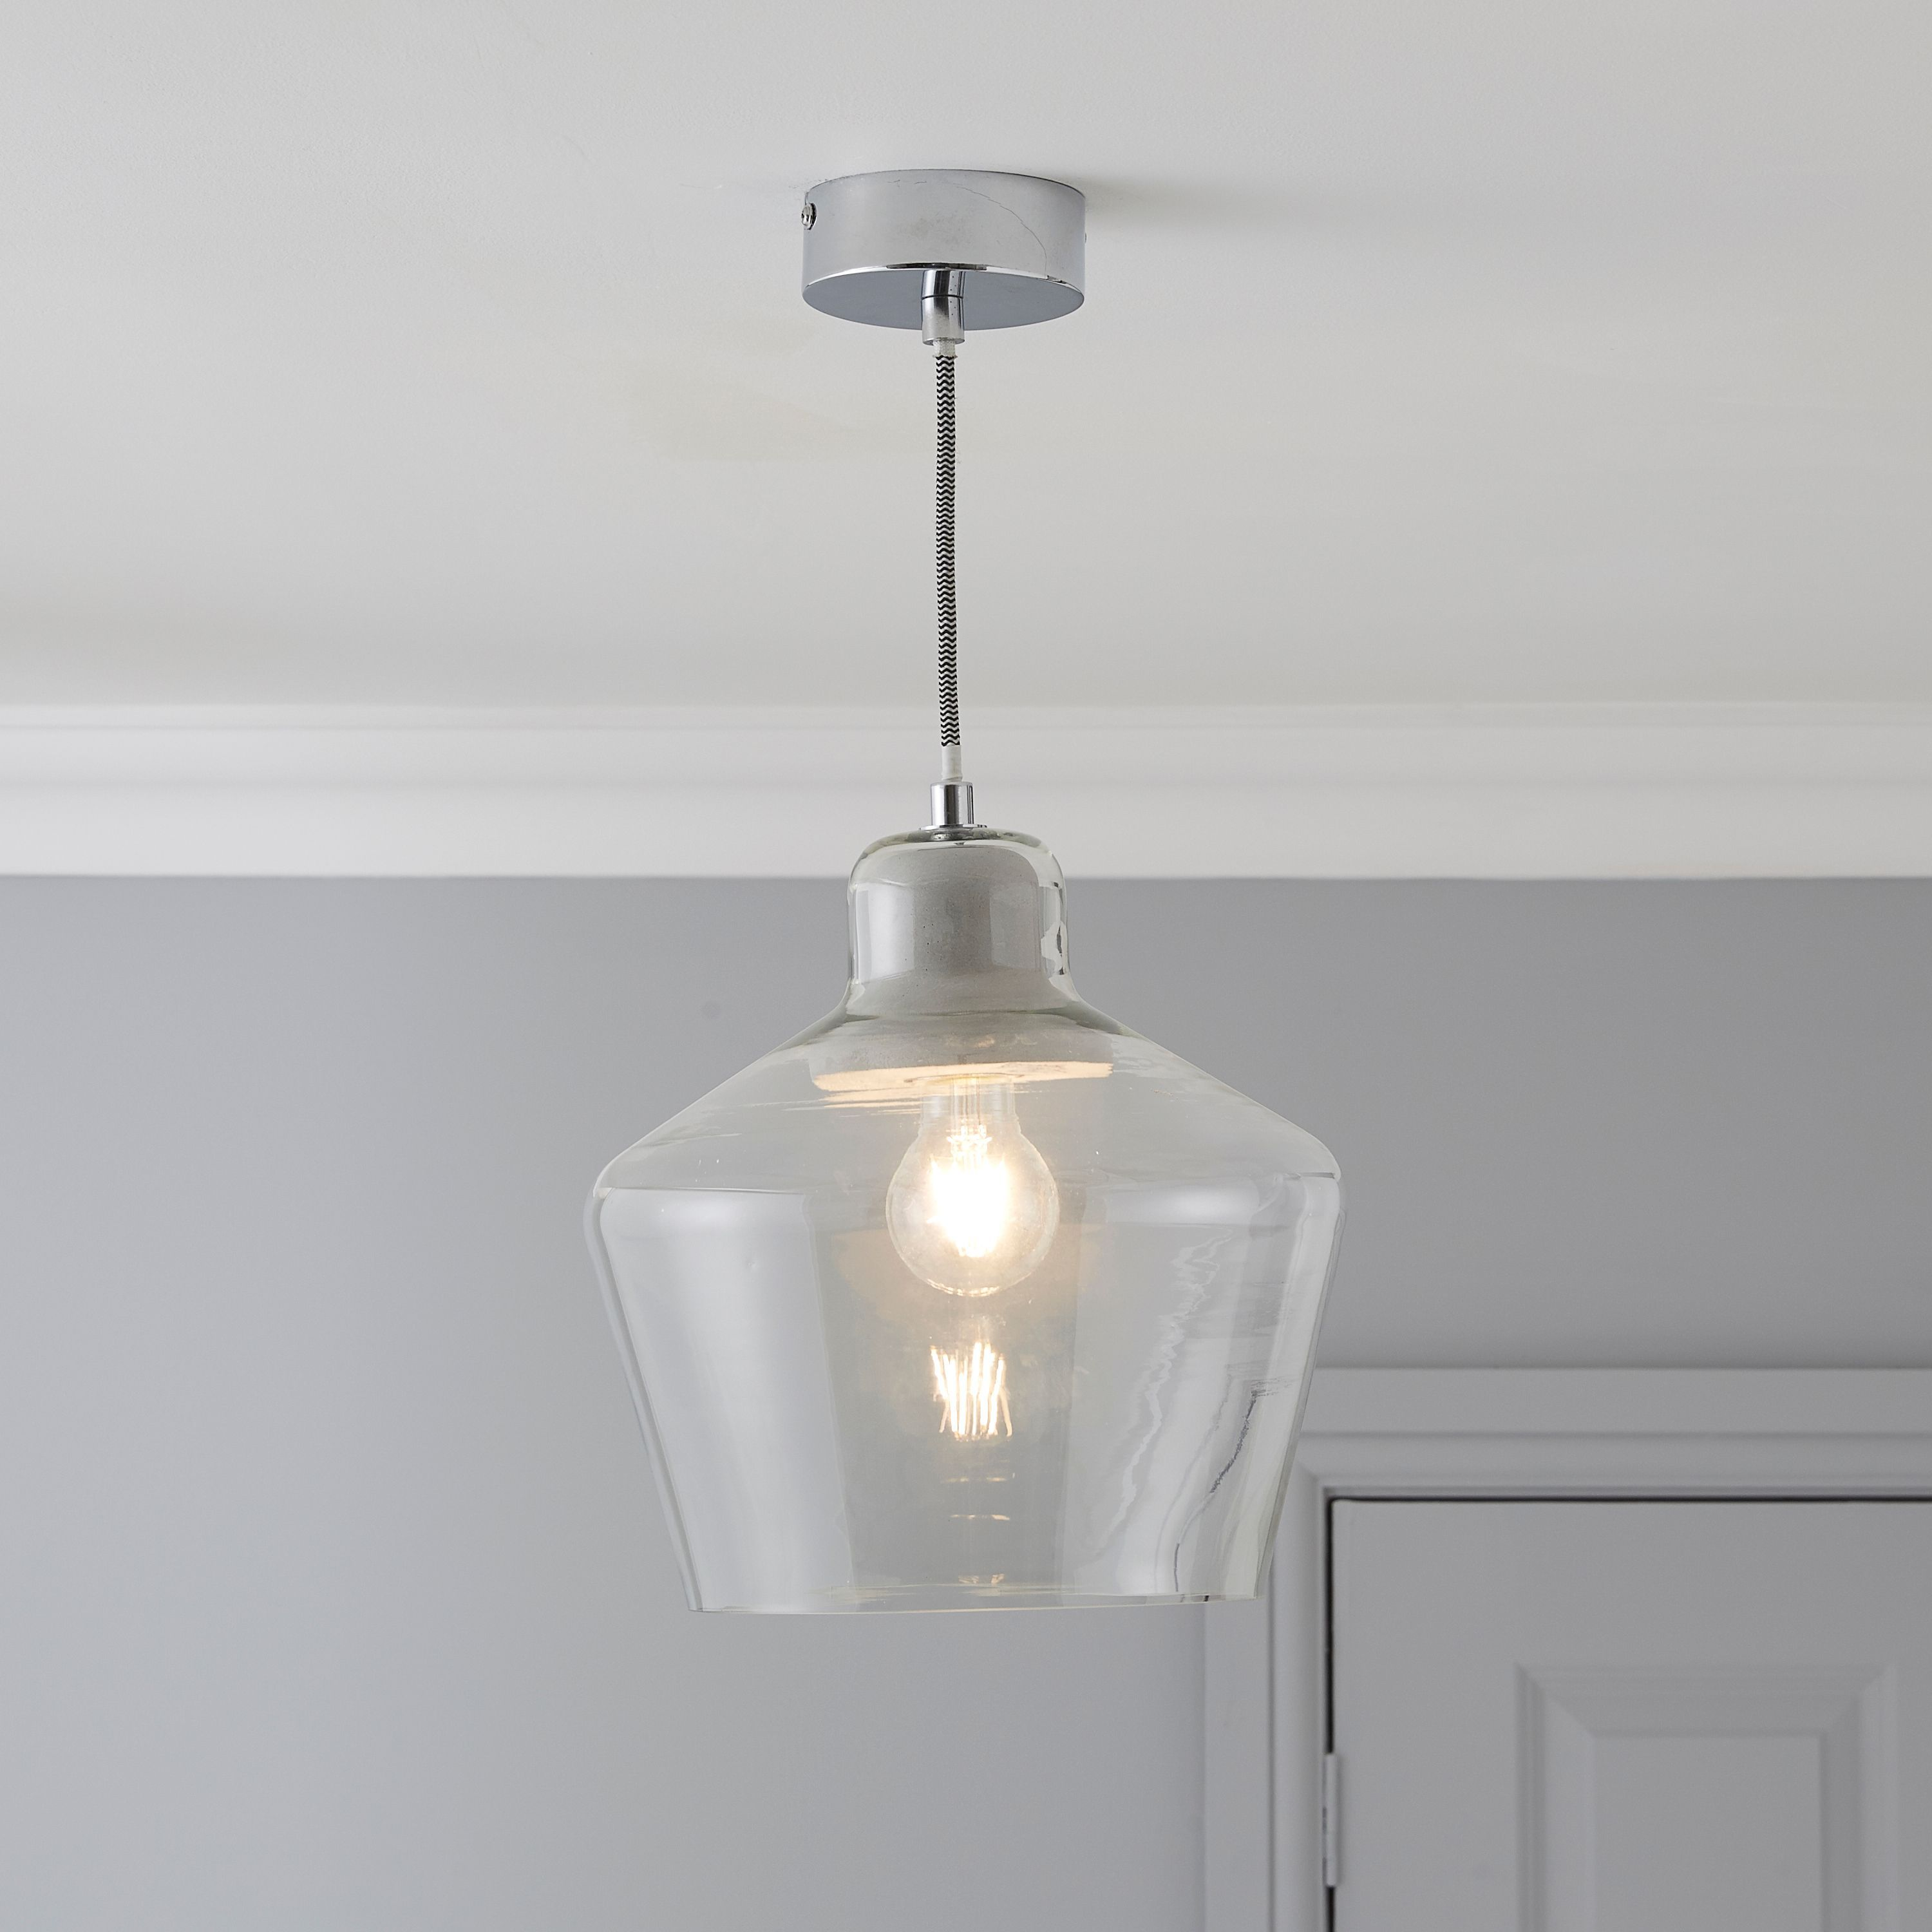 Jidda clear pendant ceiling light large ceiling pendants and jidda clear pendant ceiling light large mozeypictures Choice Image